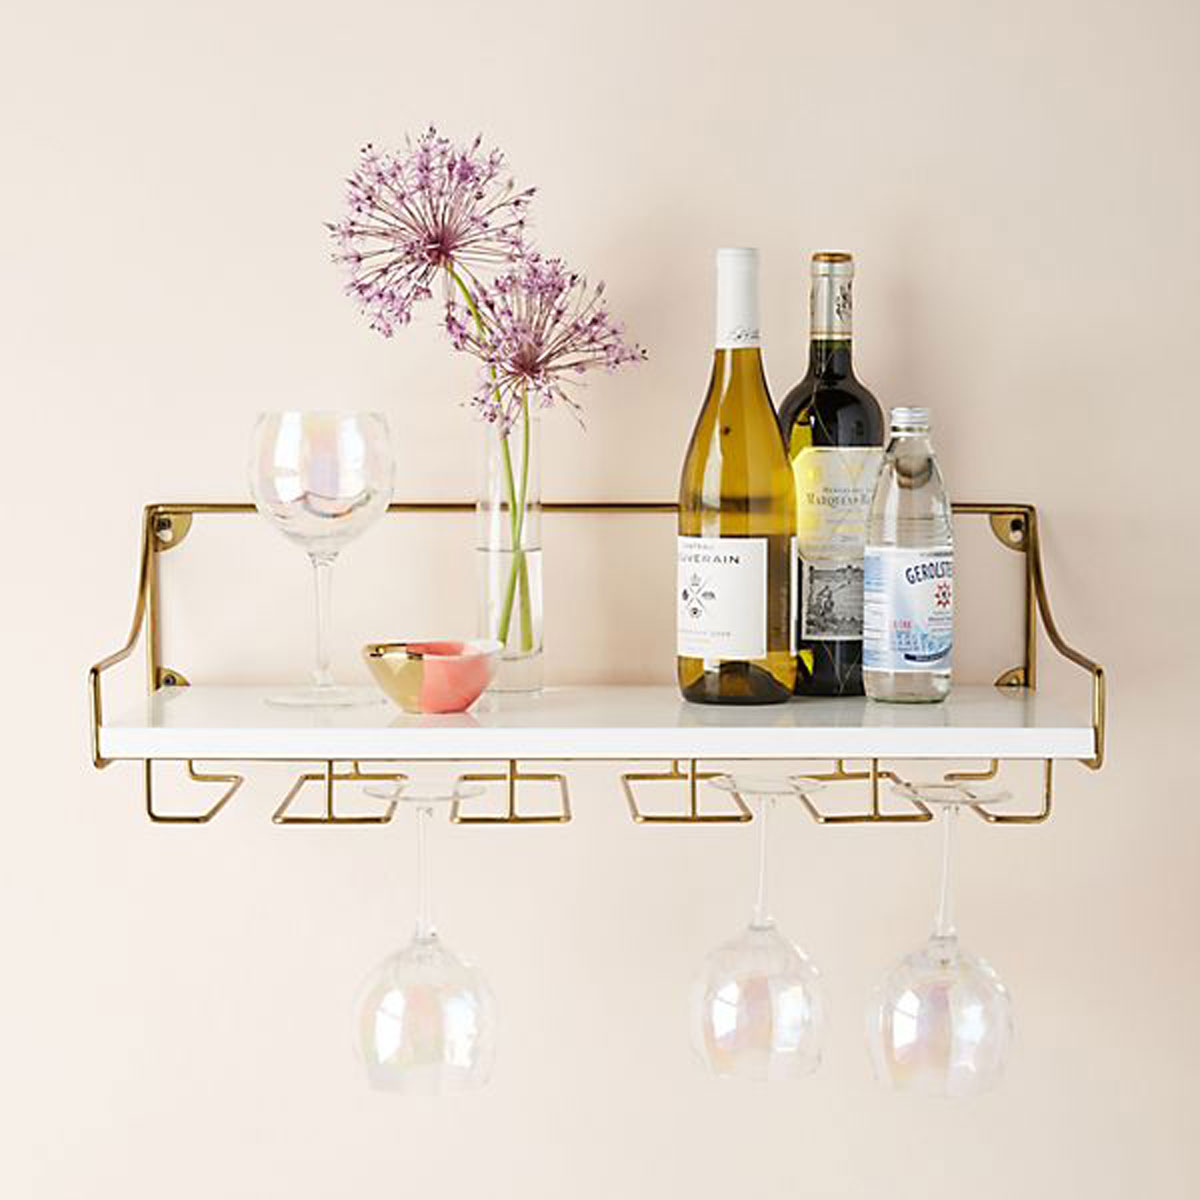 Anthropologie wine shelf